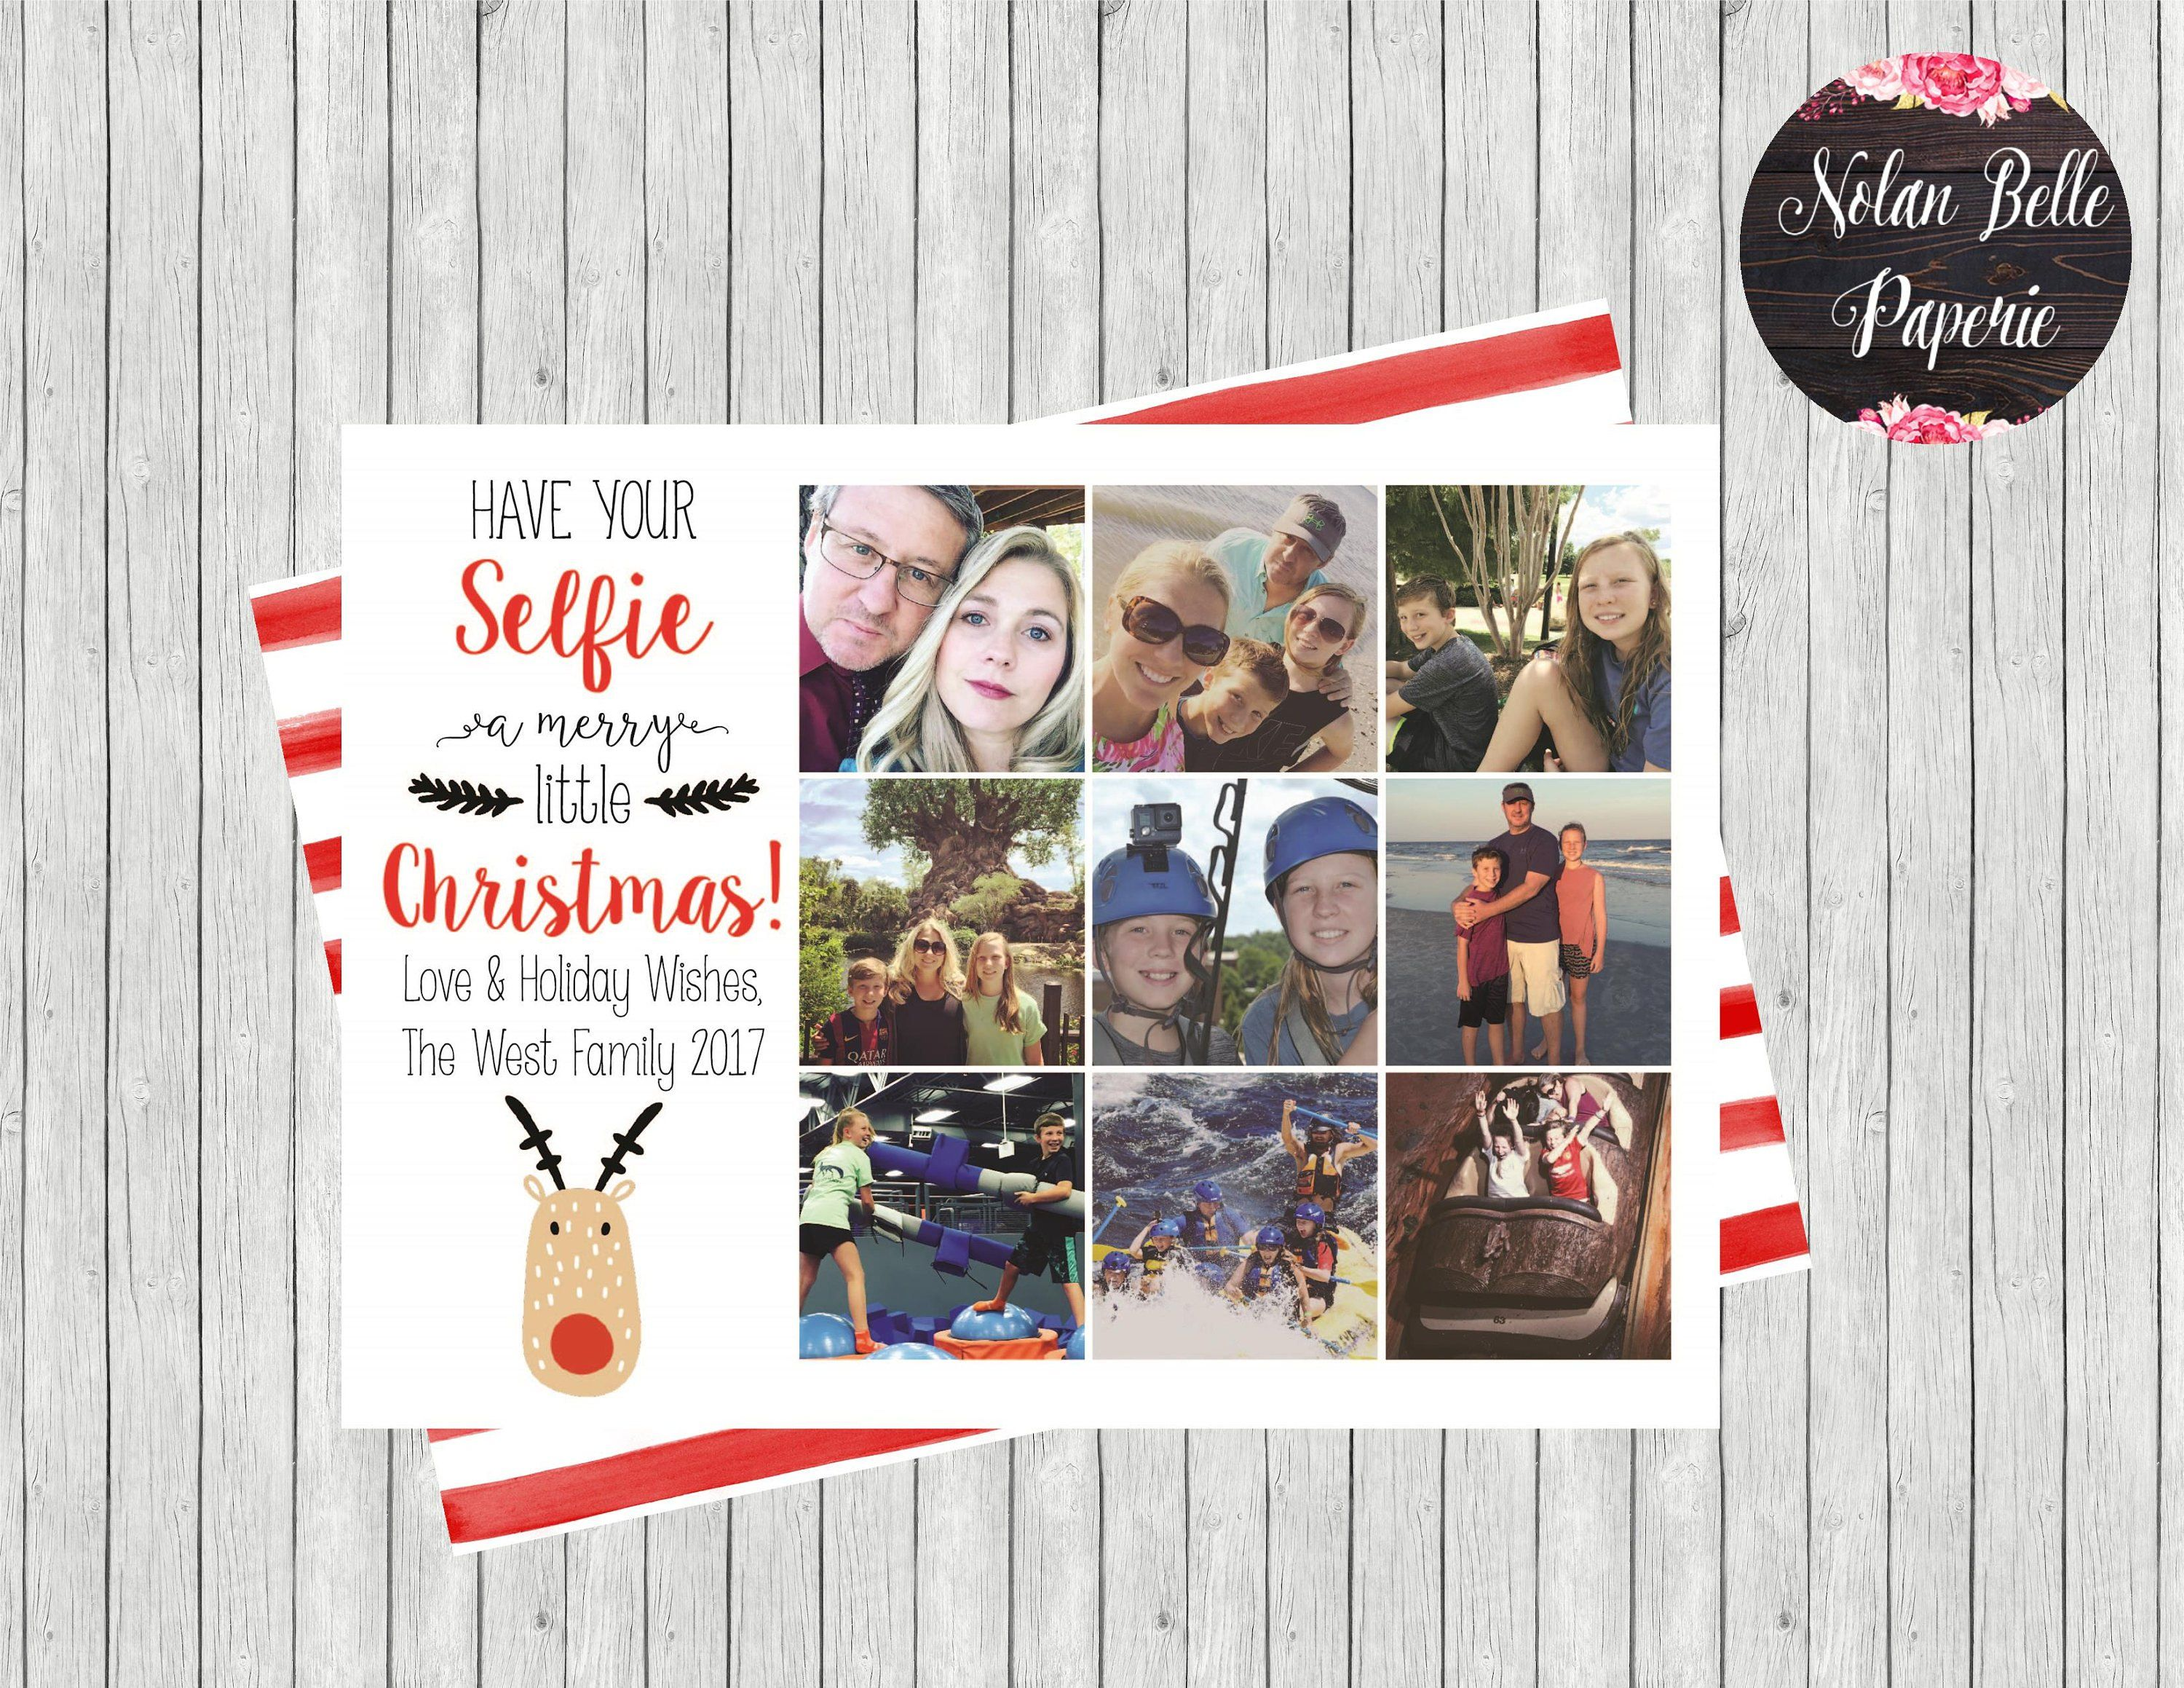 Pin By Nolan Belle Paperie On Holiday Ideas Selfie Christmas Card Family Christmas Cards Christmas Photo Cards